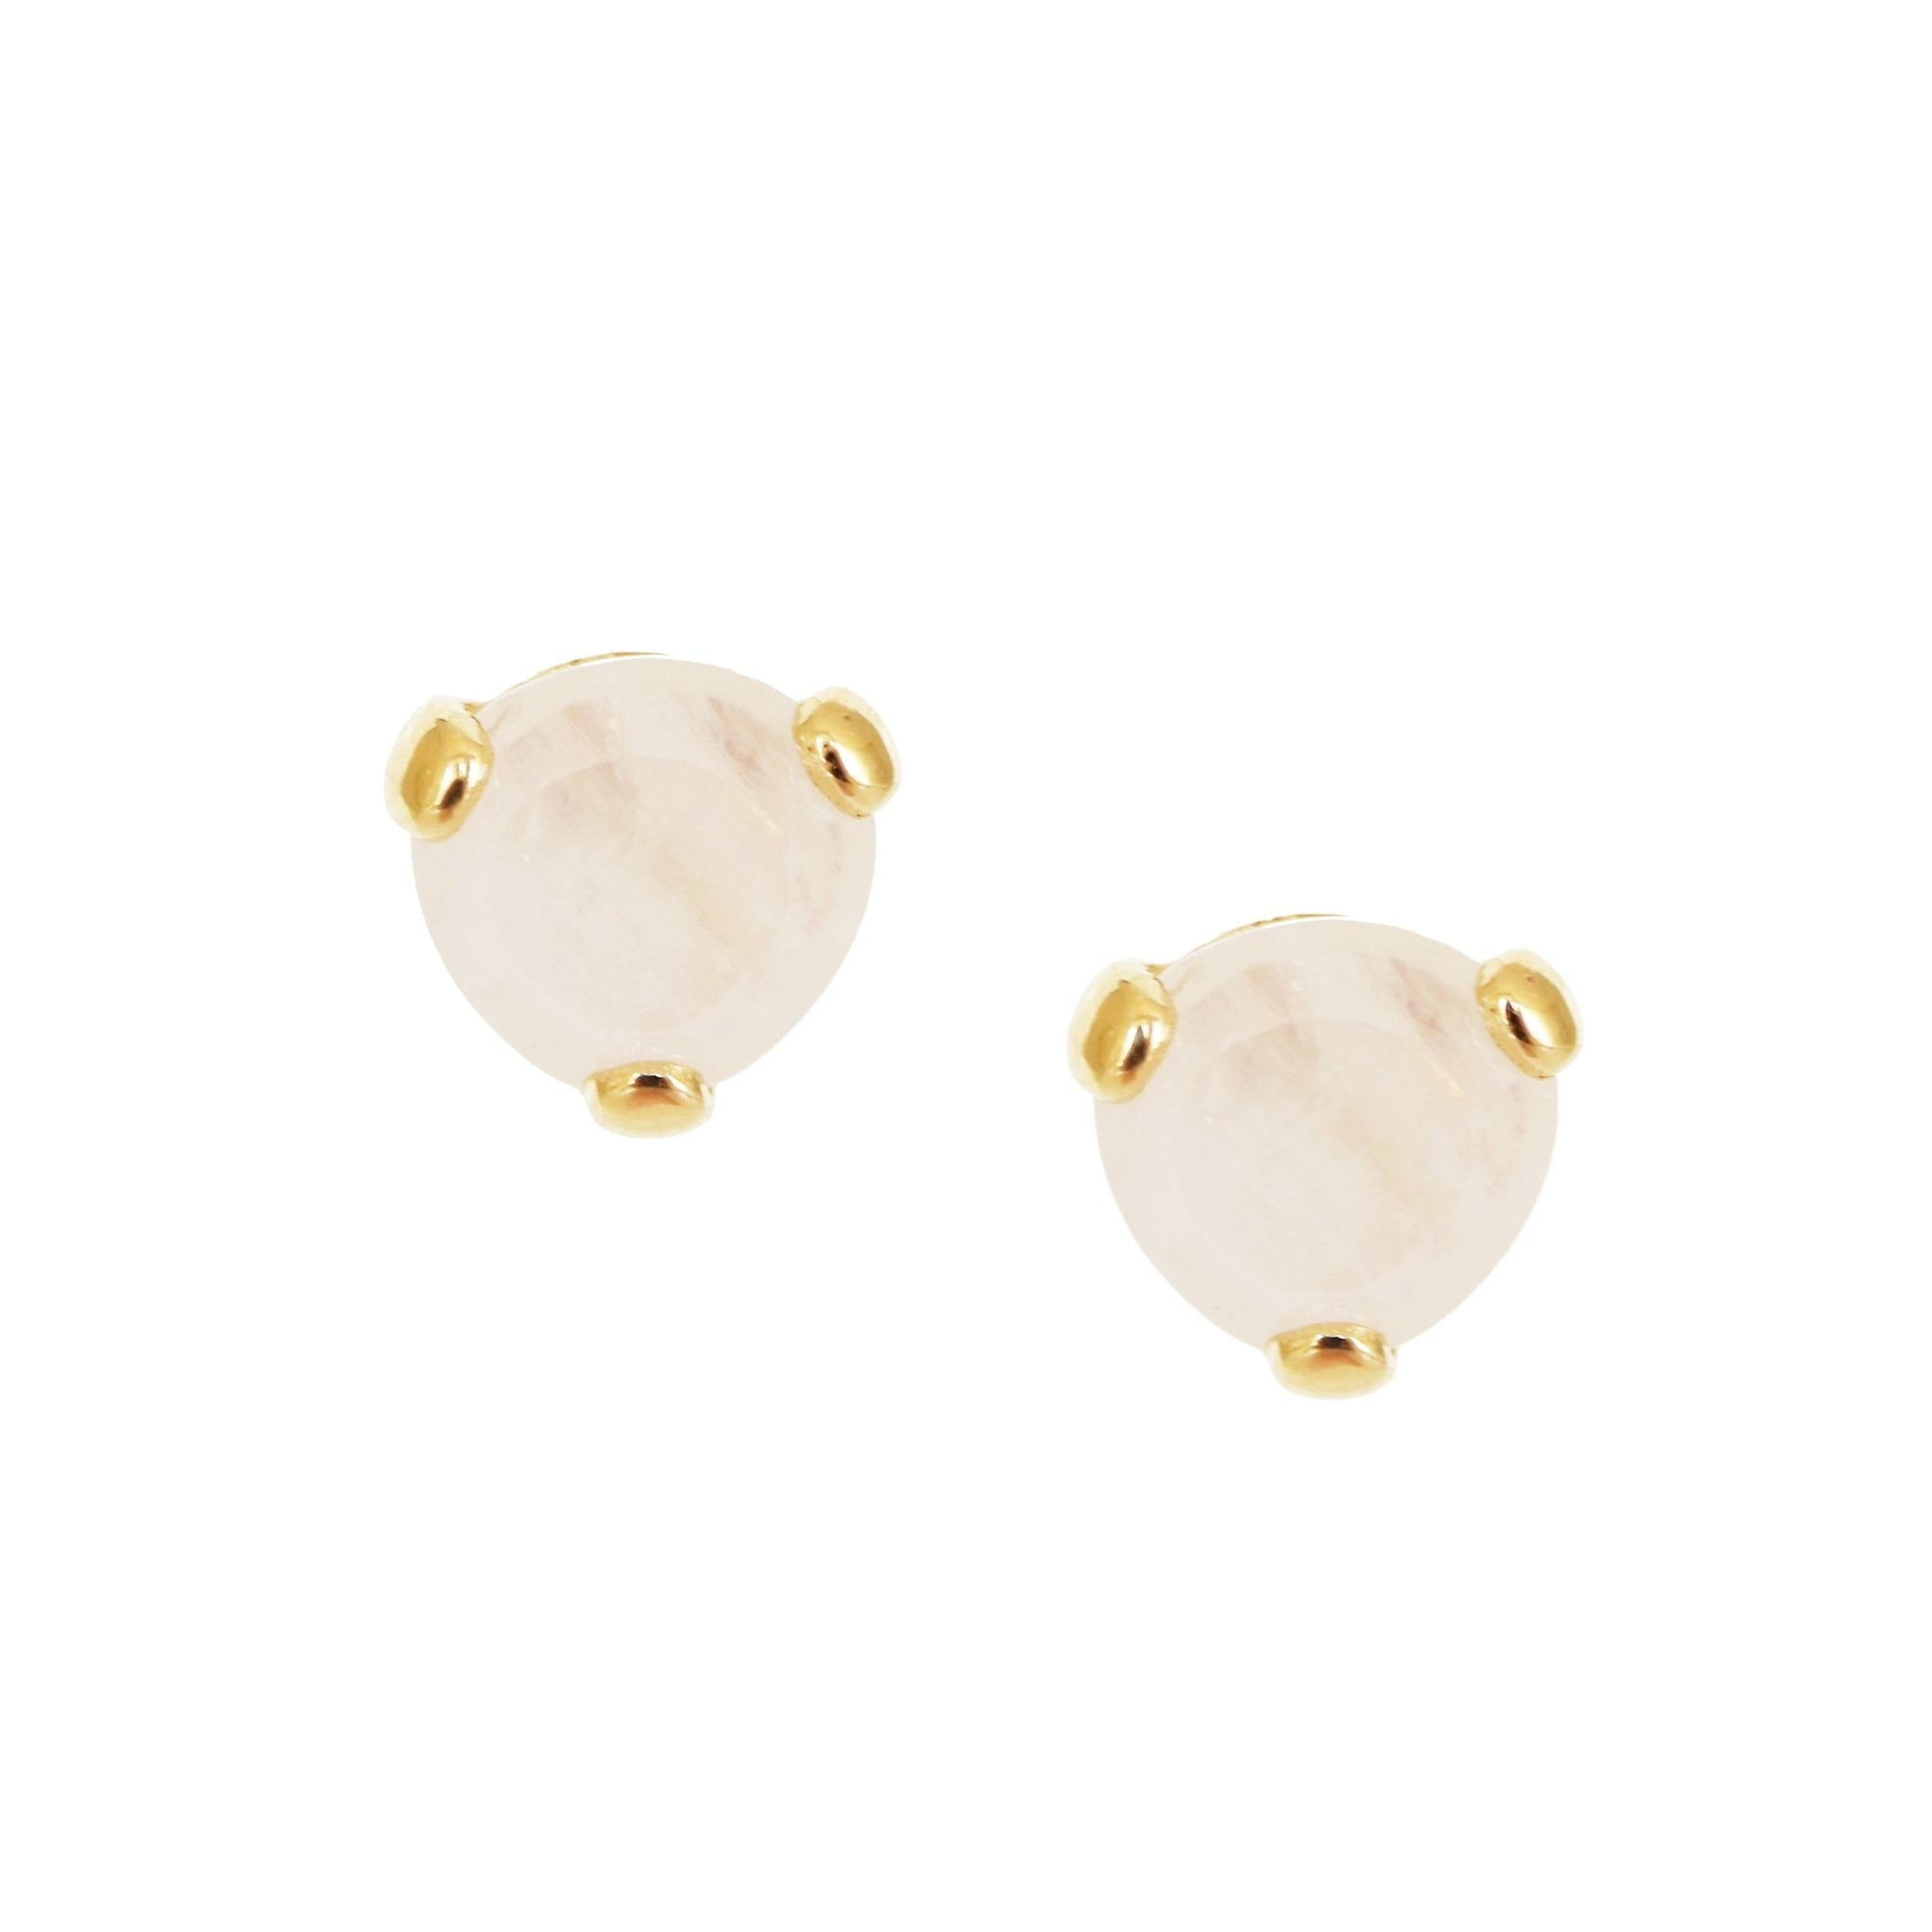 MINI FEARLESS STUDS - RAINBOW MOONSTONE & GOLD - SO PRETTY CARA COTTER